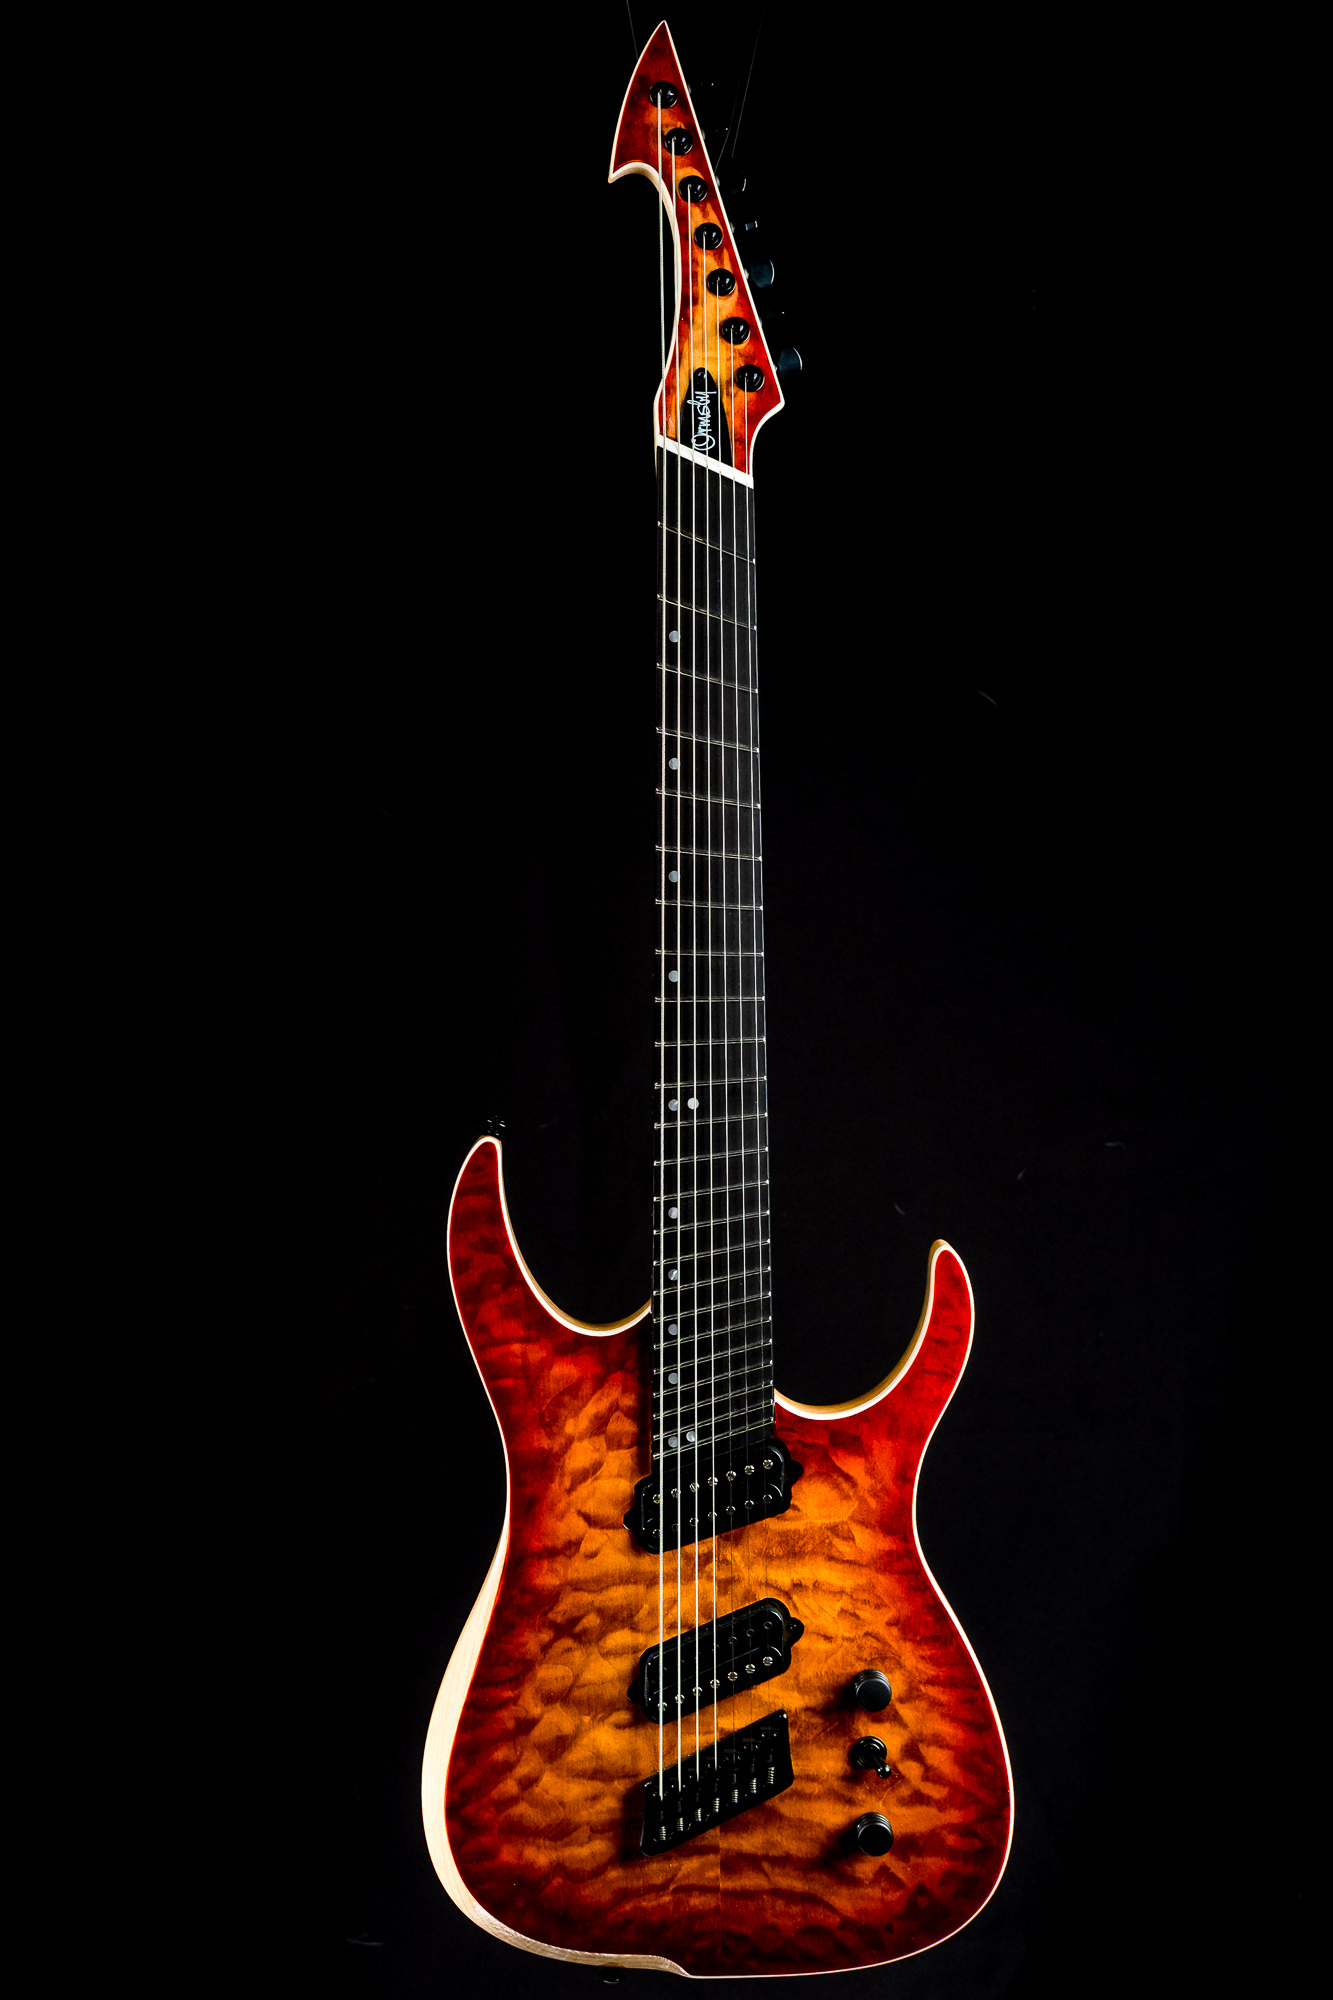 Ormsby GTR Run 2 Hype Cherry Burst 7.jpg